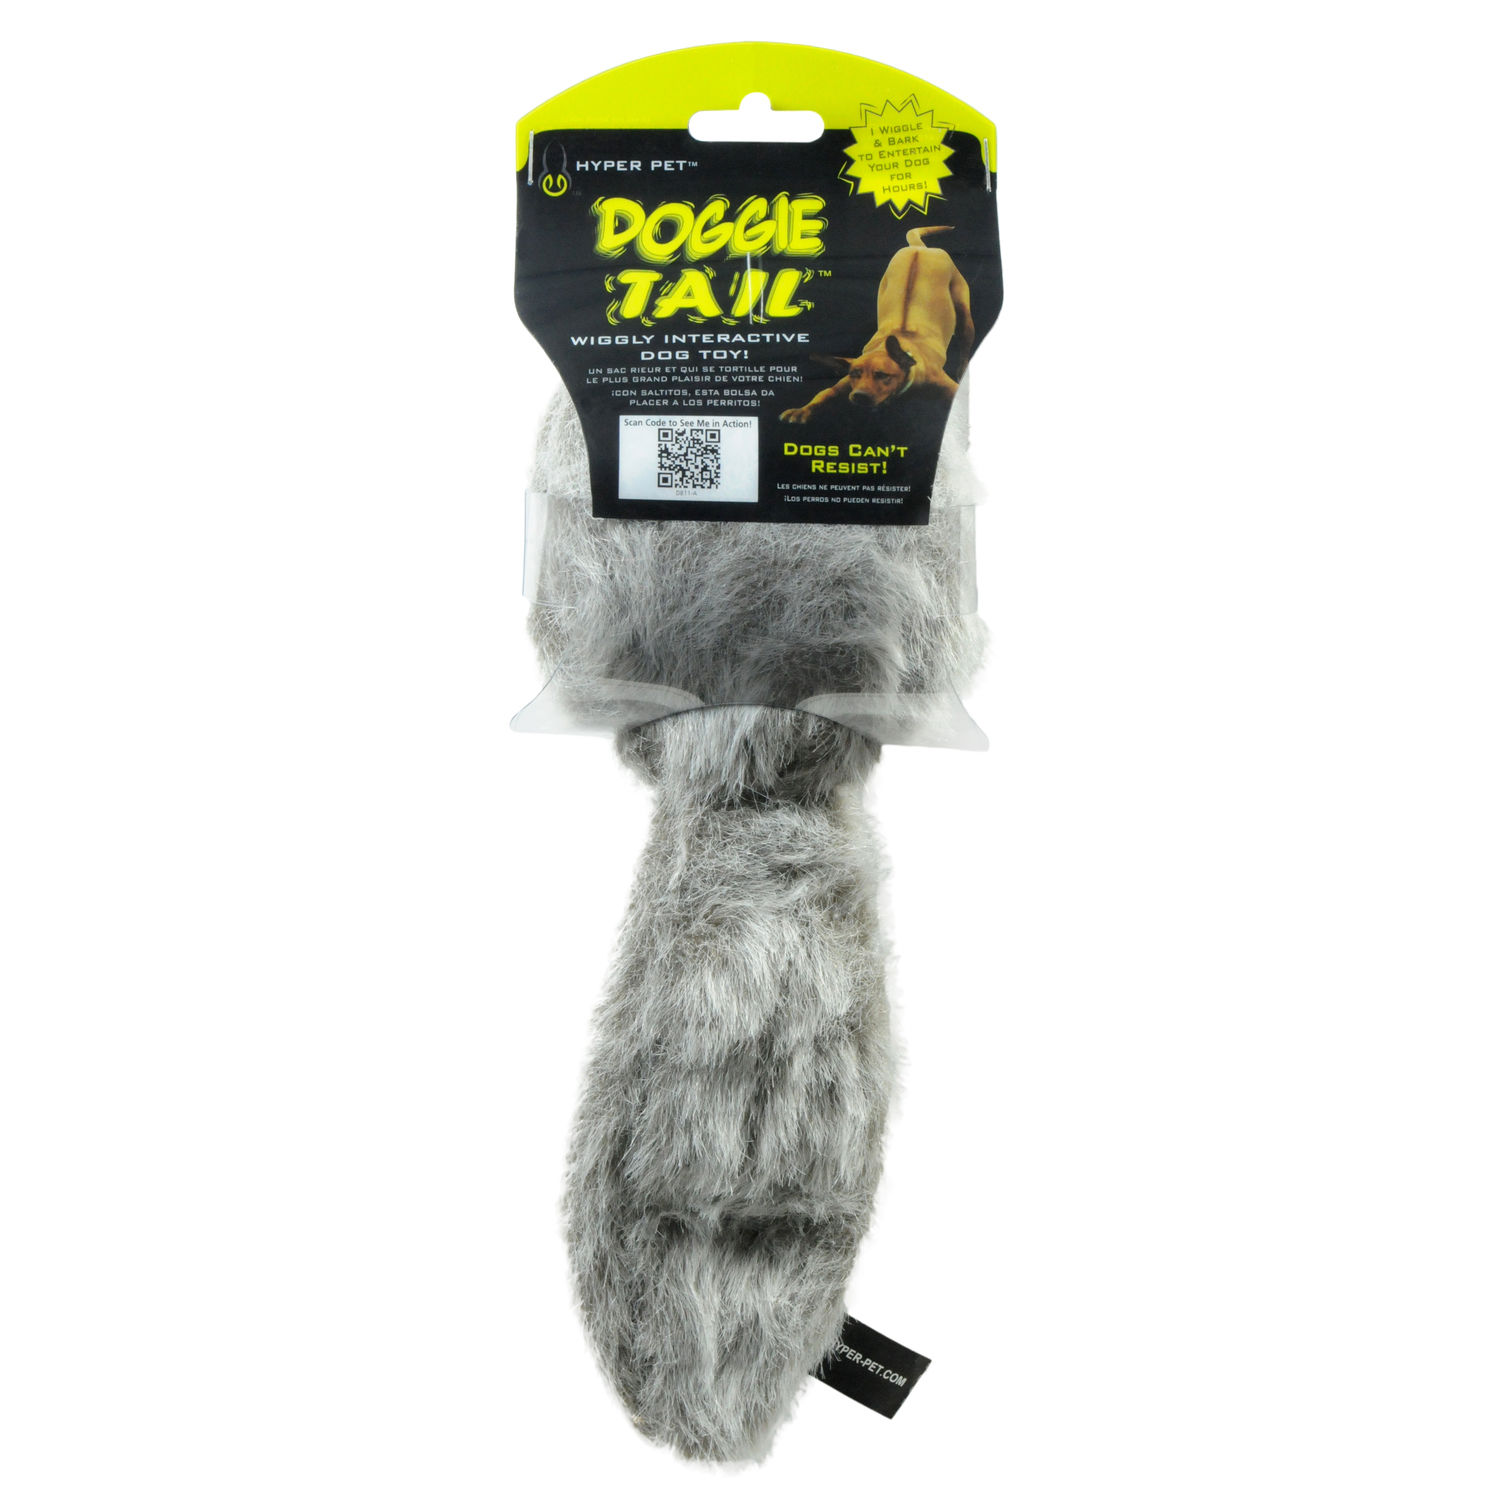 "Hyper Pet Doggie Tail Dog Toy Gray 9.5"" x 6"" x 3.25"""